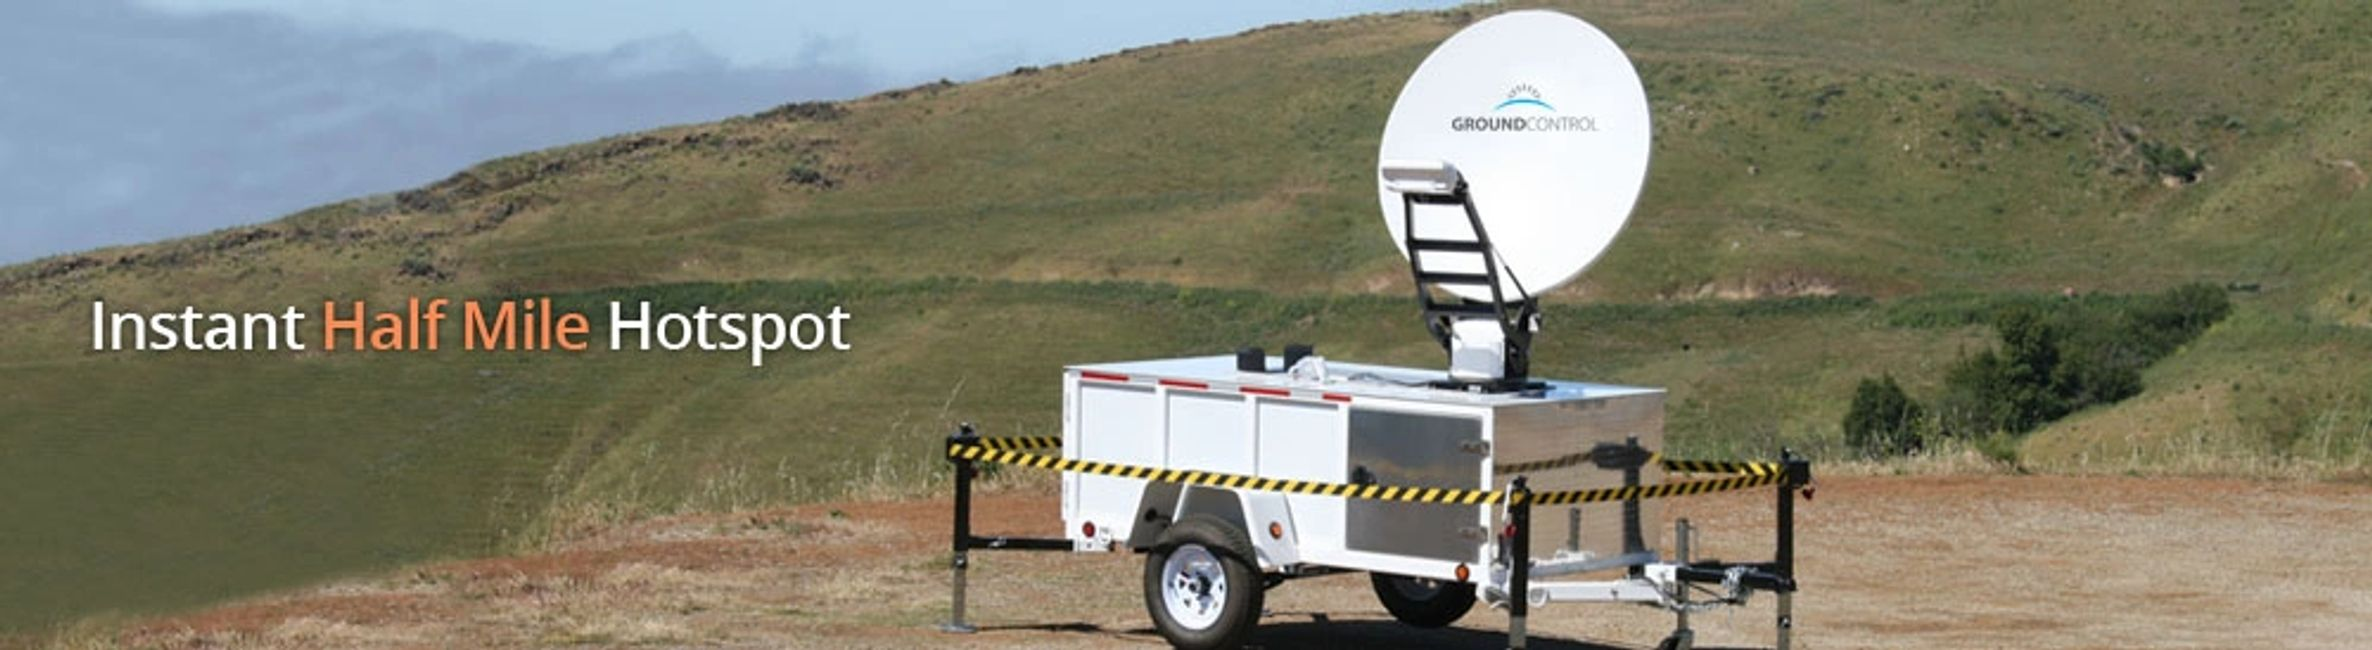 The T-100 smart trailer from Sigflow and Ground Control give a 1/2 mile wide hotspot instantly.